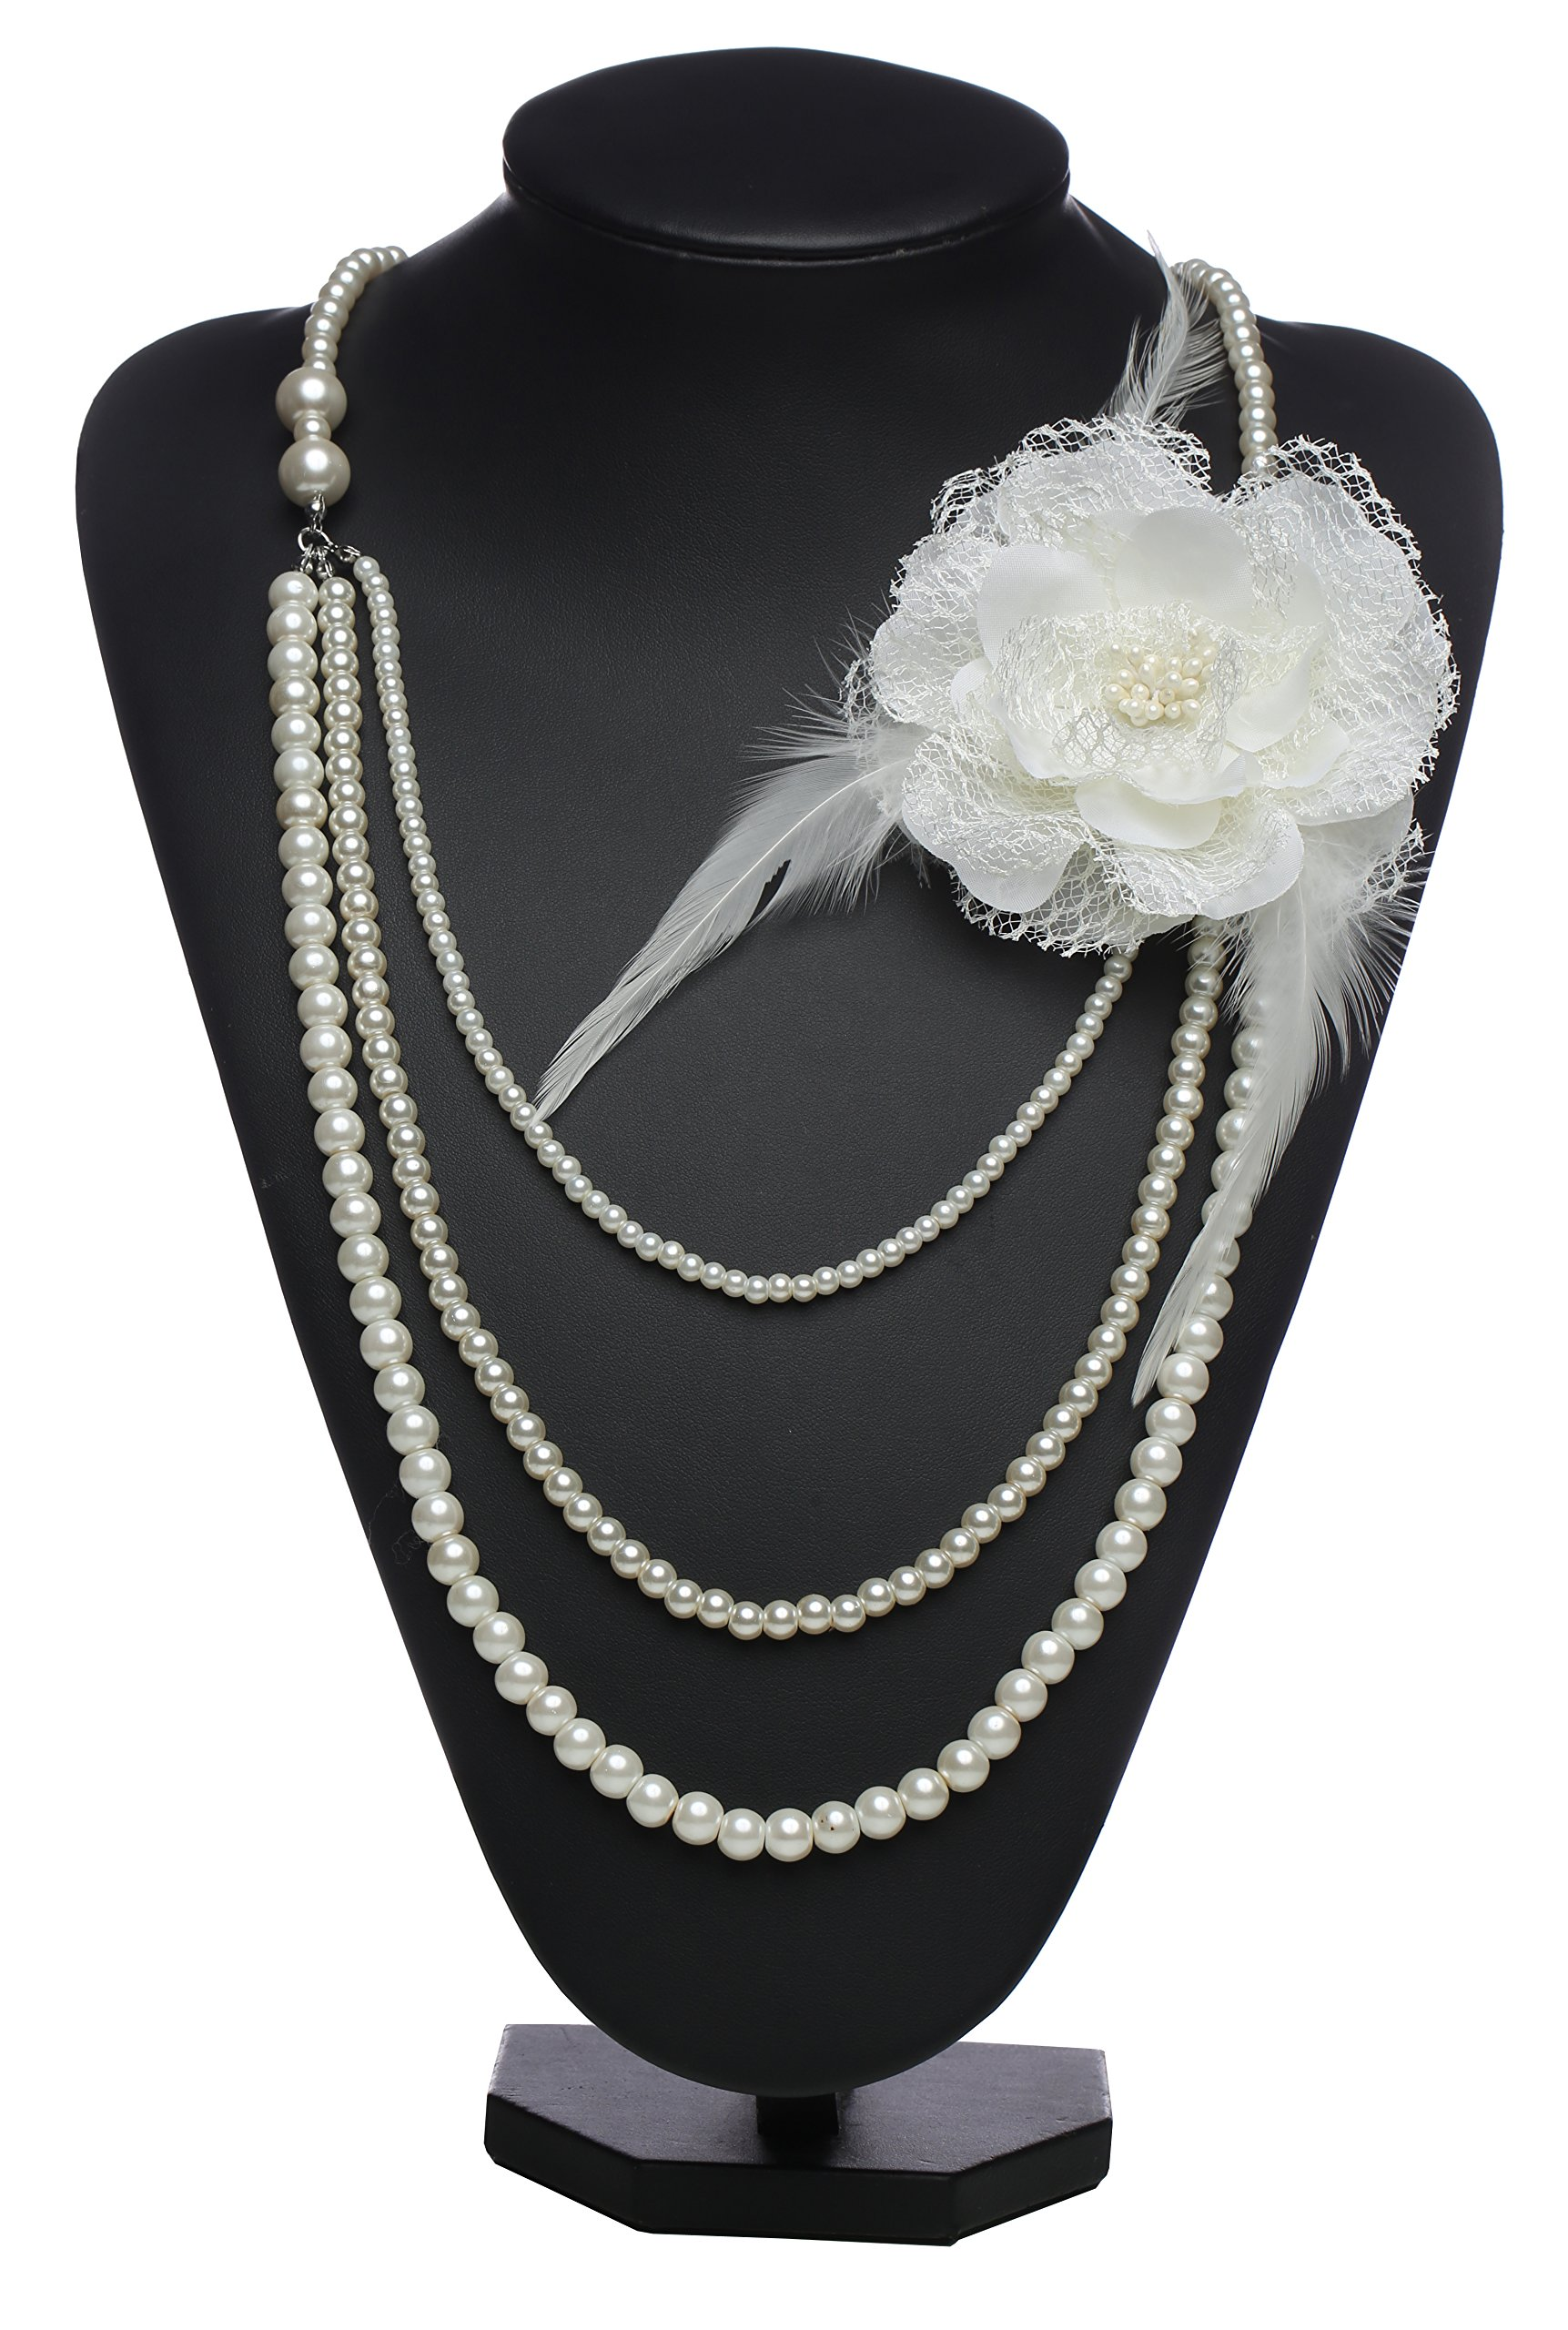 BABEYOND Vintage 1920s Gatsby Multi-Layer Imitation Pearl Choker Necklace with Lace Flower Brooch (Beige Flower)